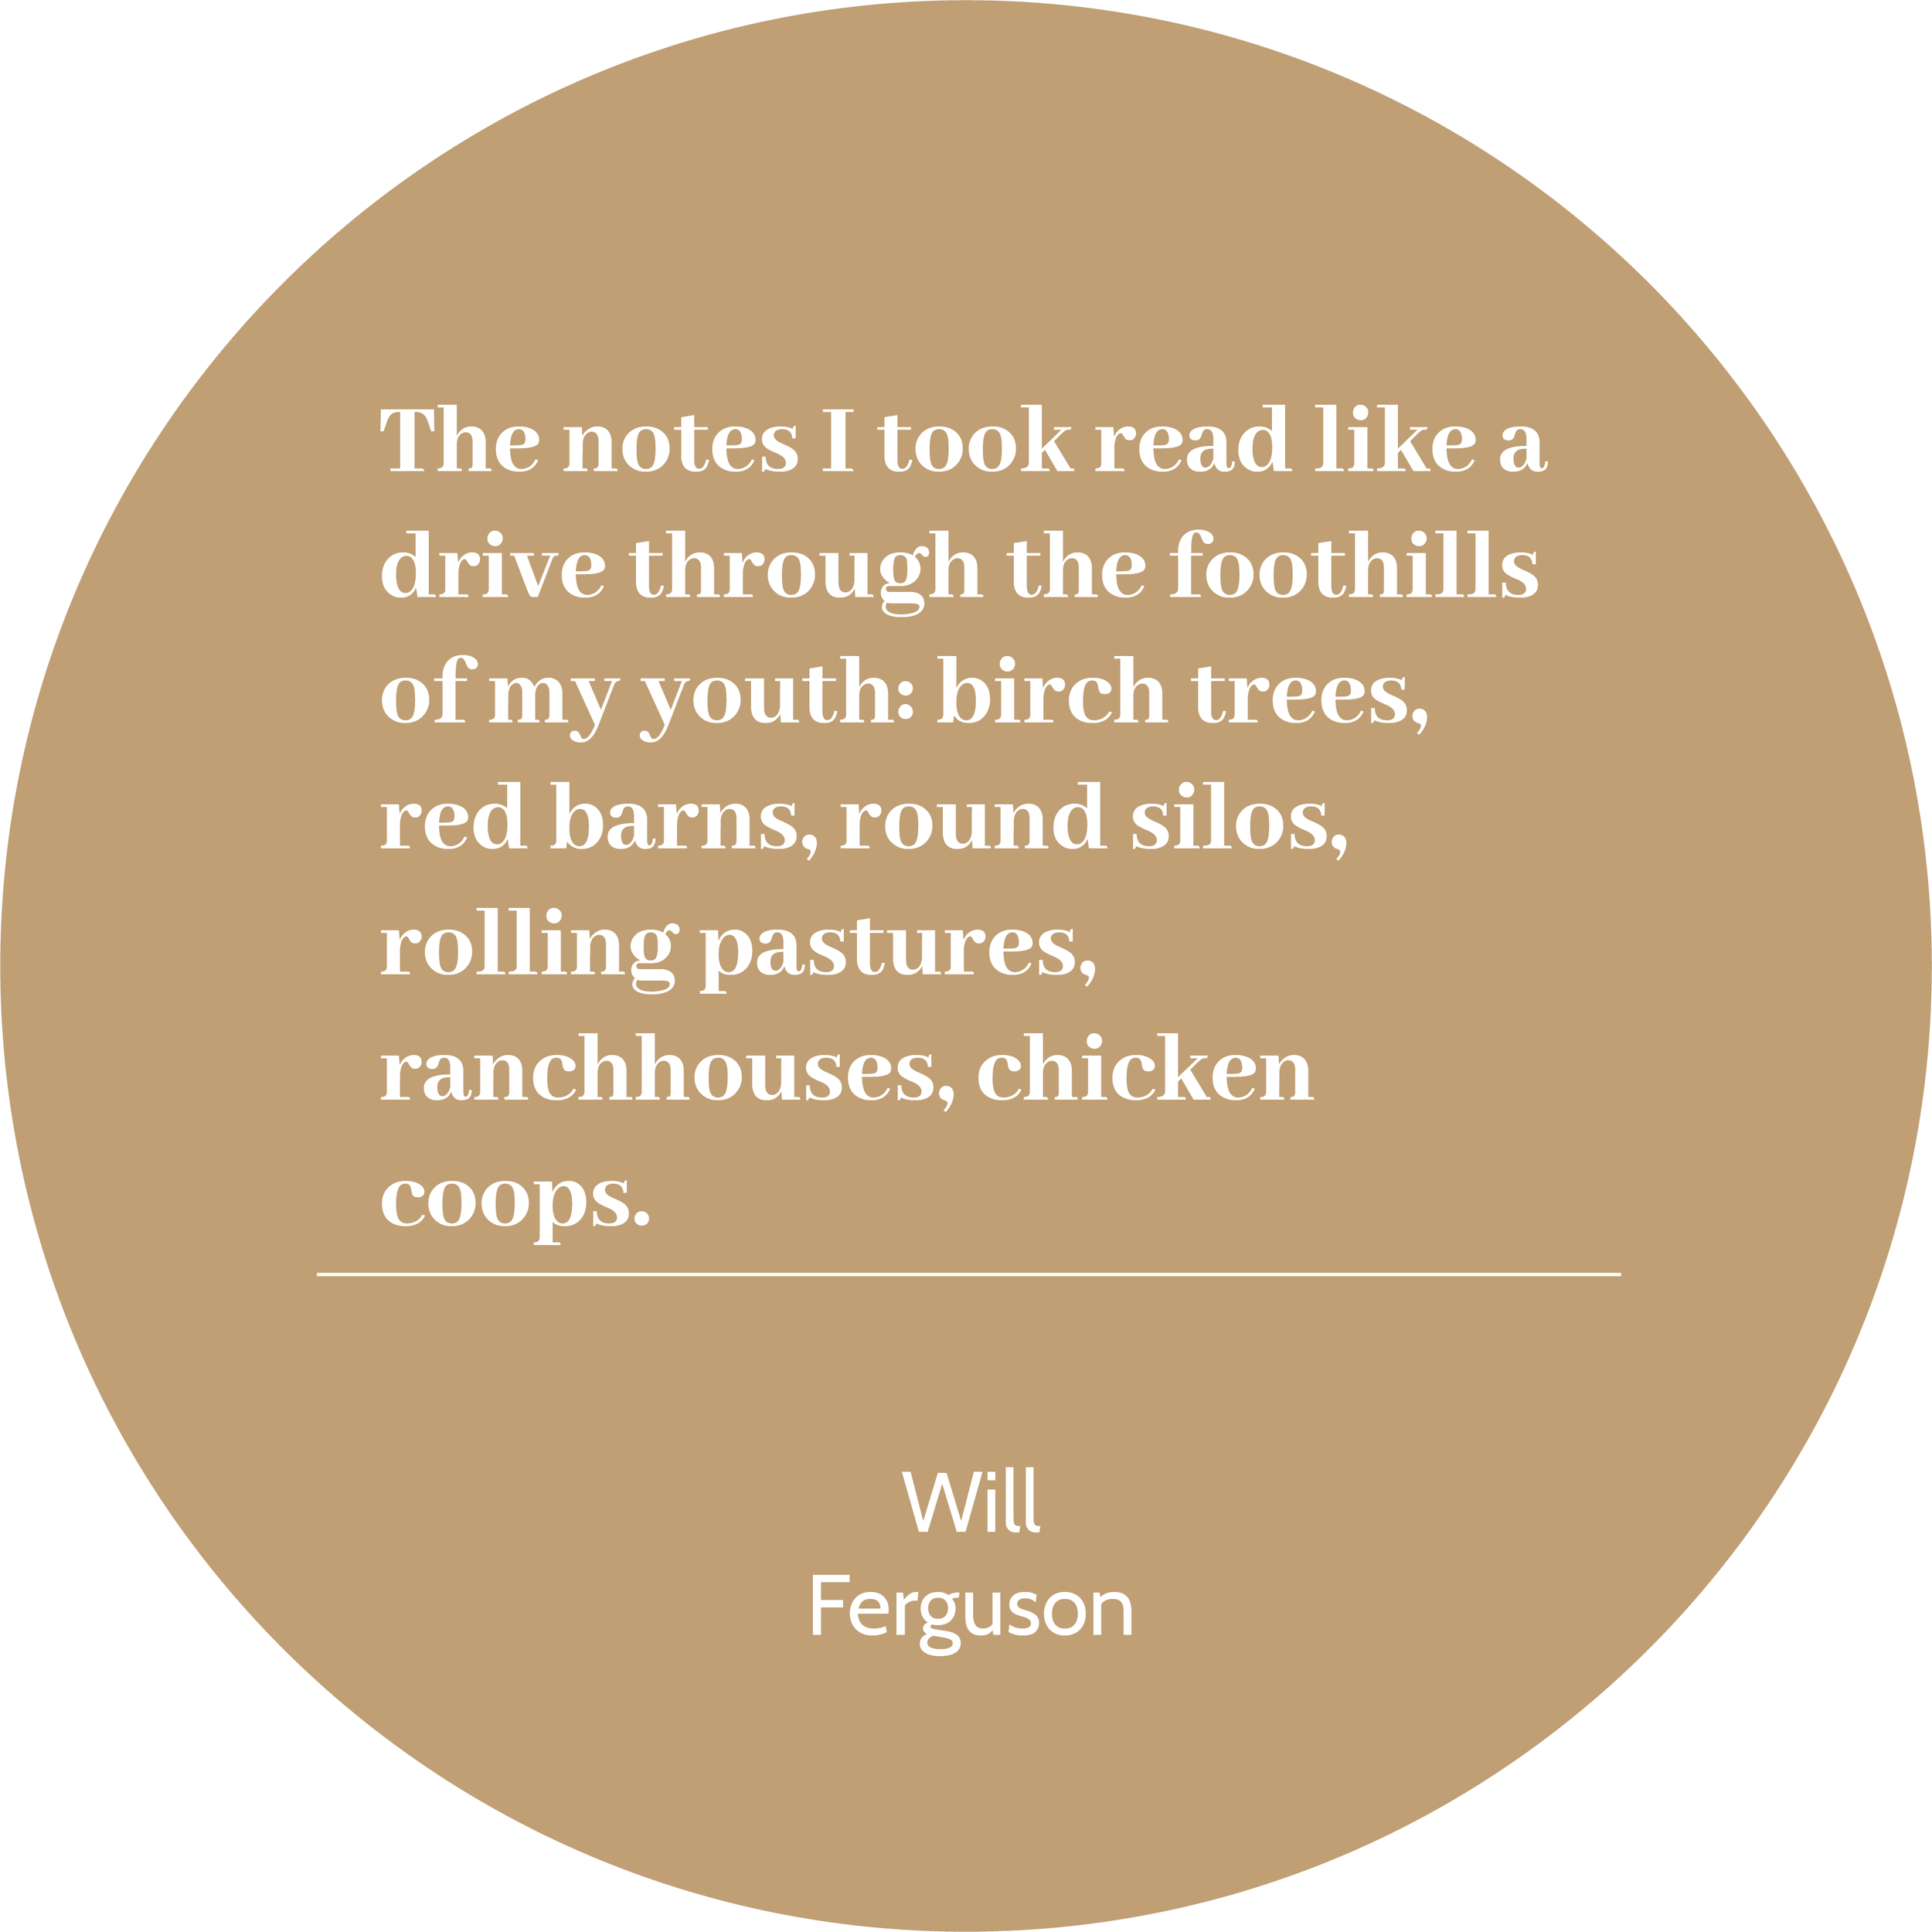 Will Ferguson quote 3 2019.04.24.png